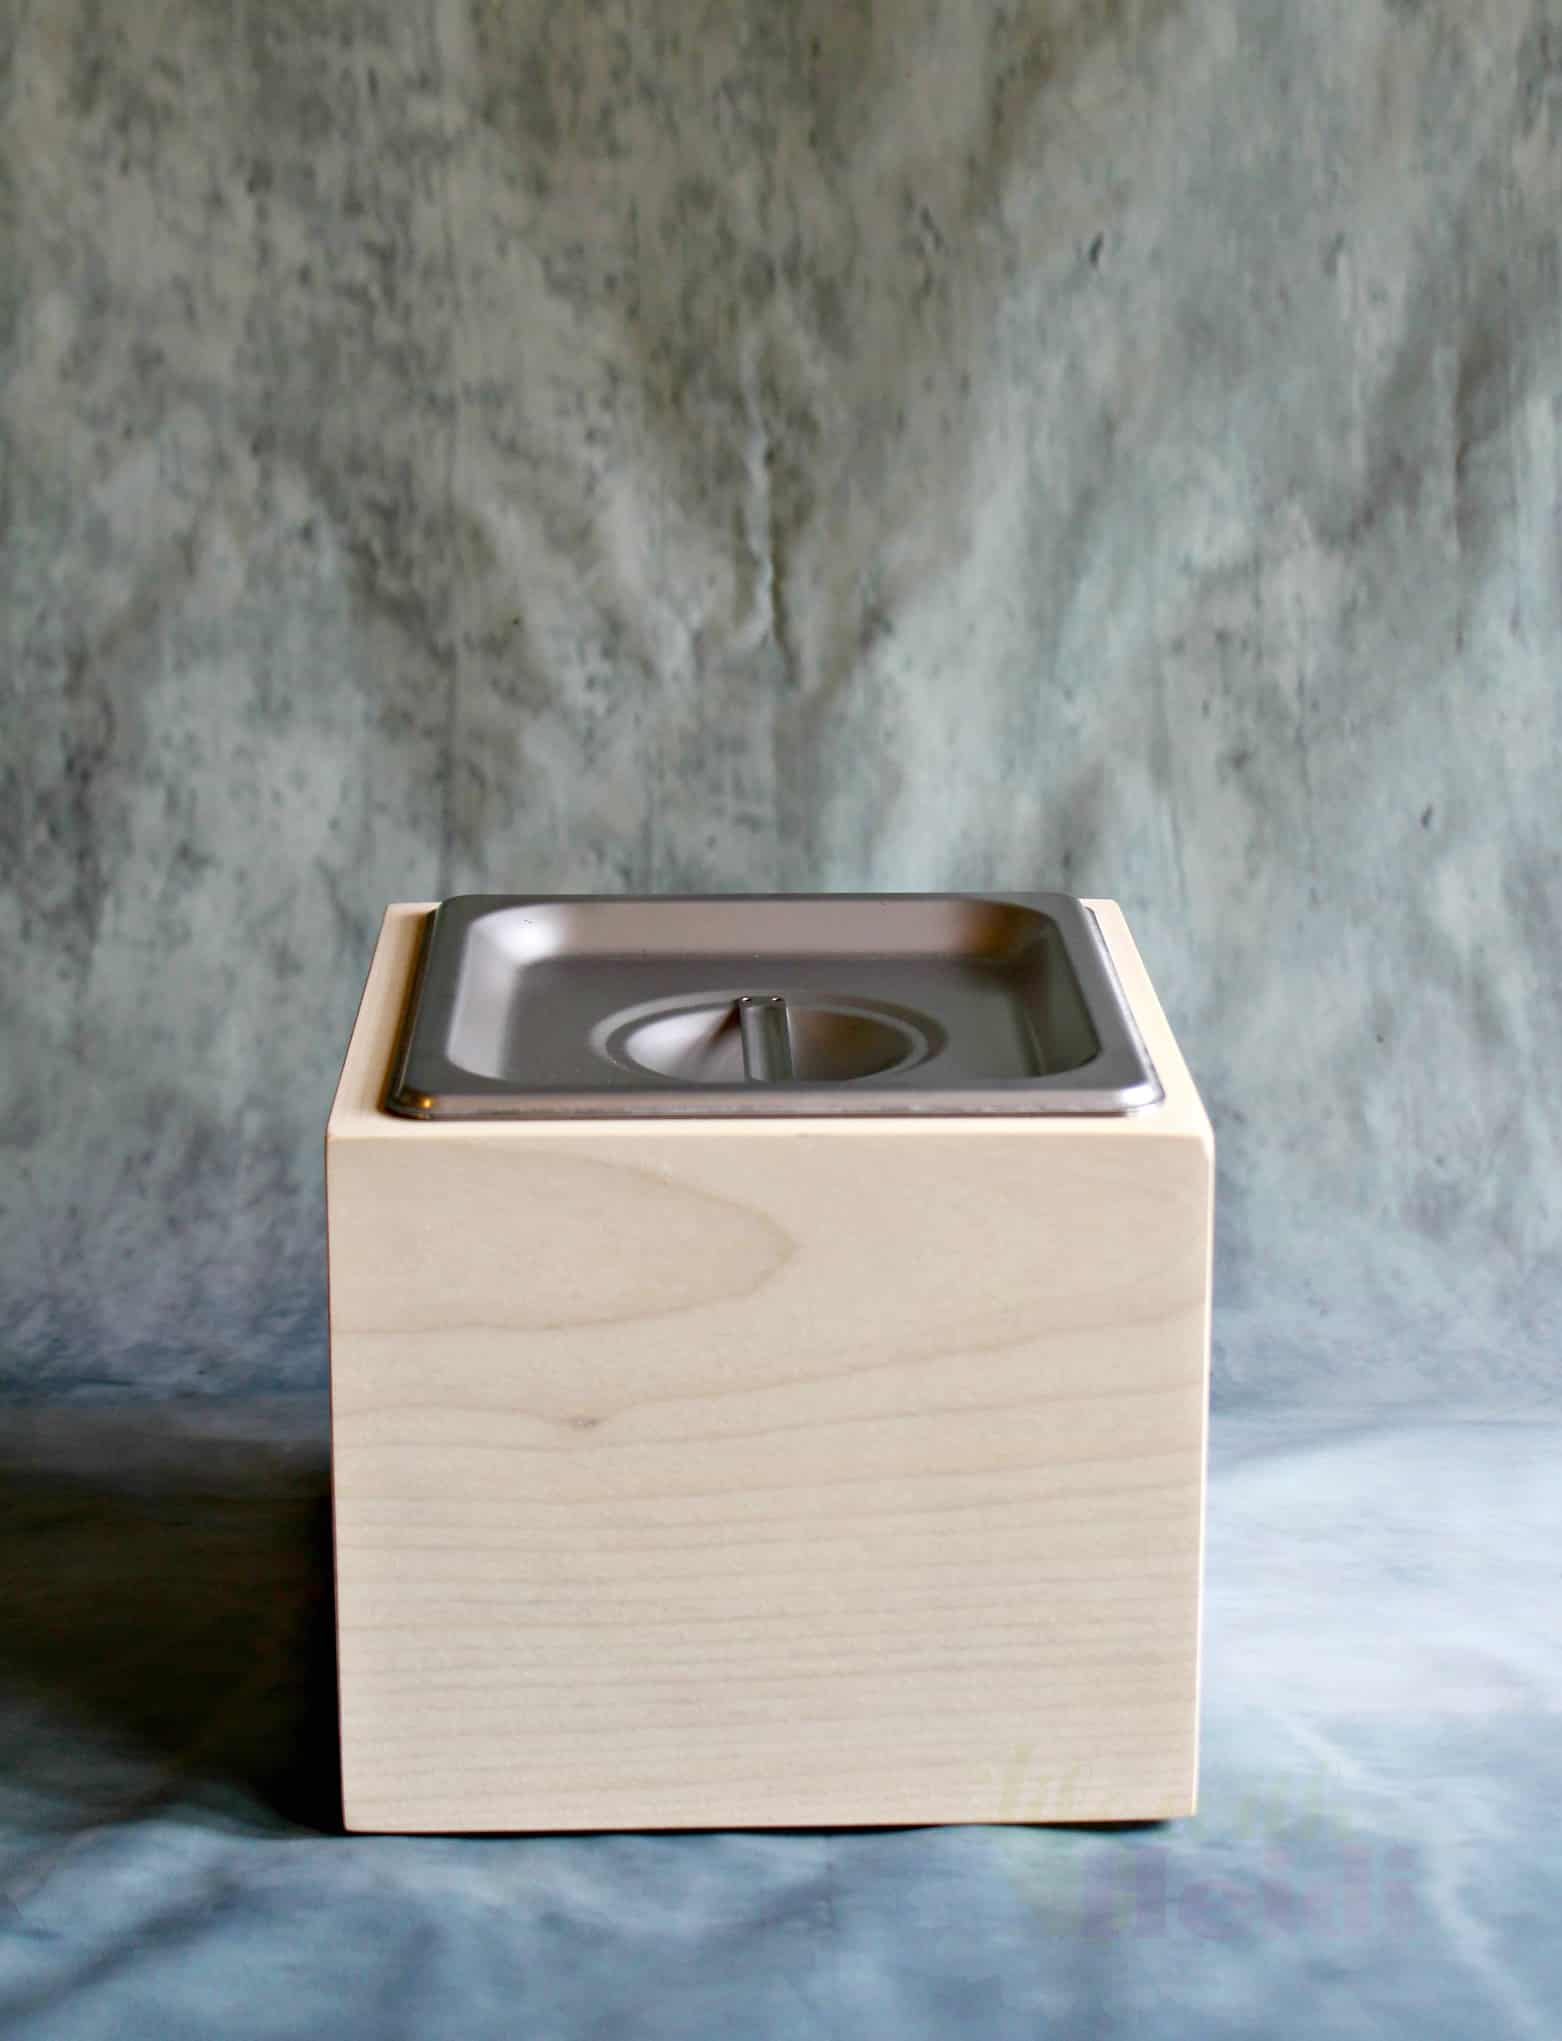 Compost bins from alasaw are the perfect gift